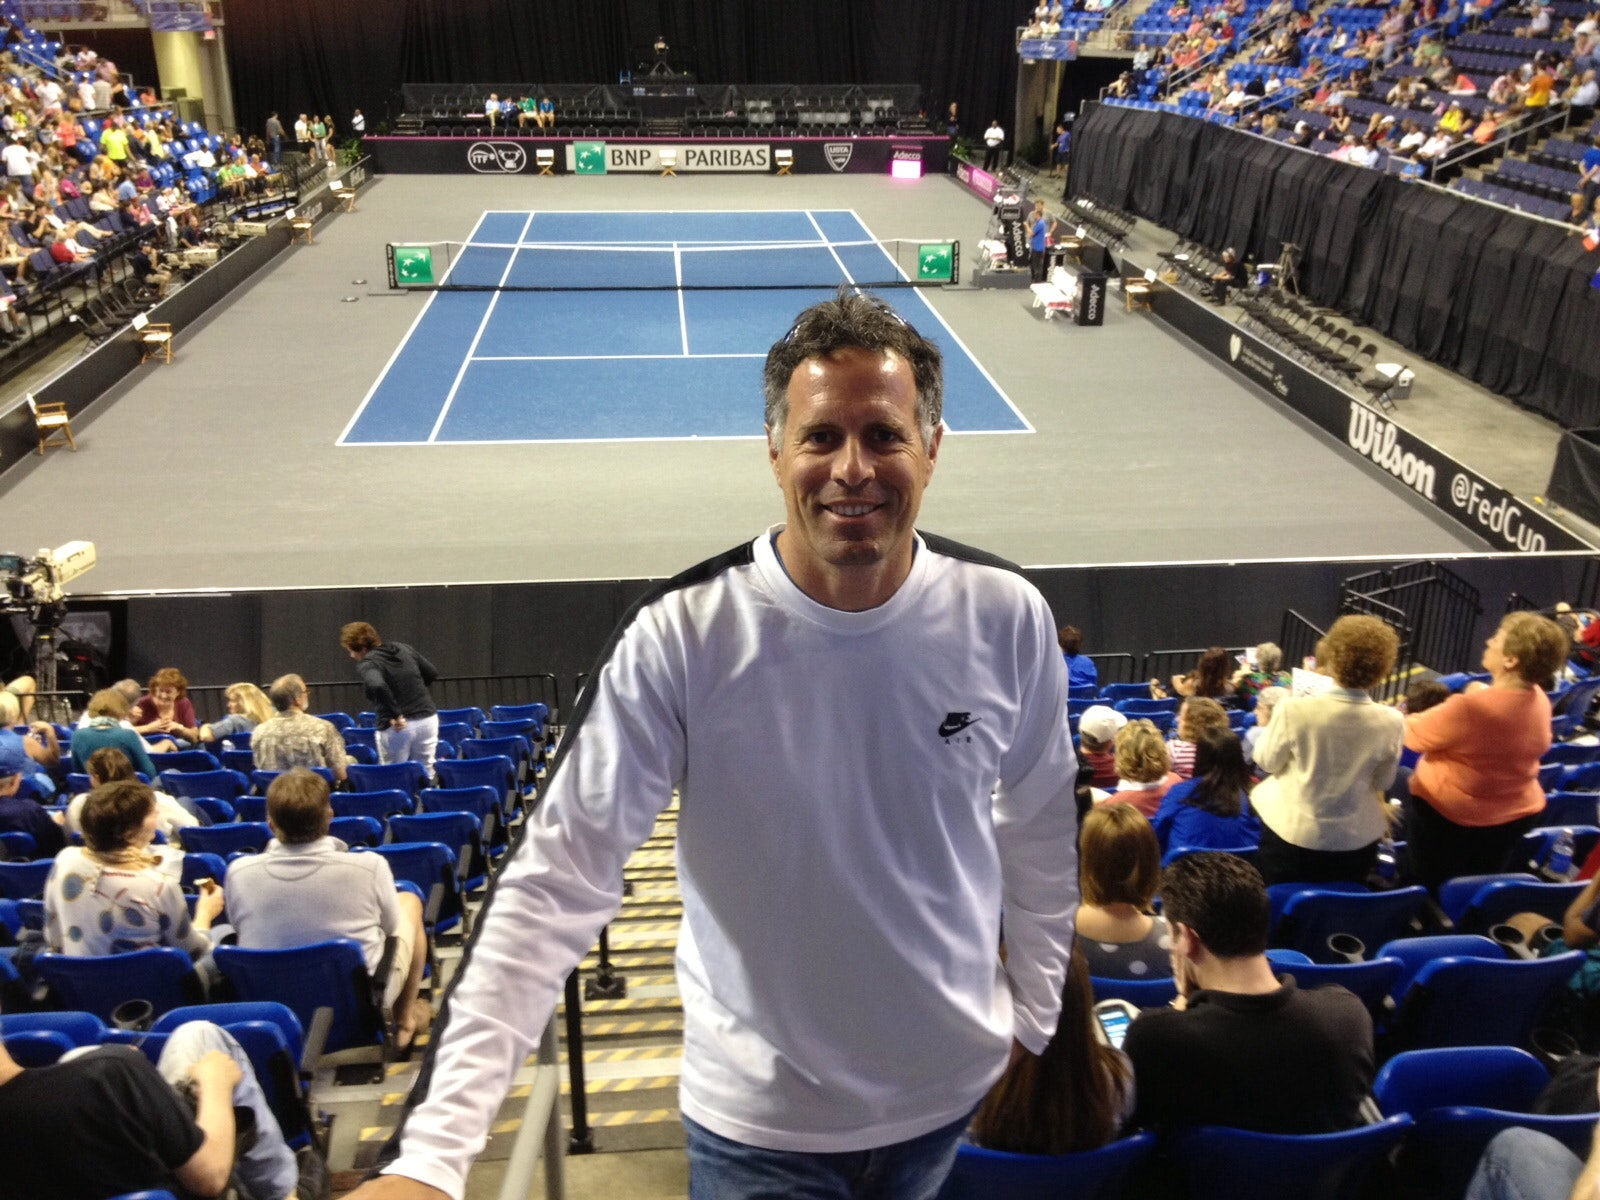 Ted B. teaches tennis lessons in Leawood, KS